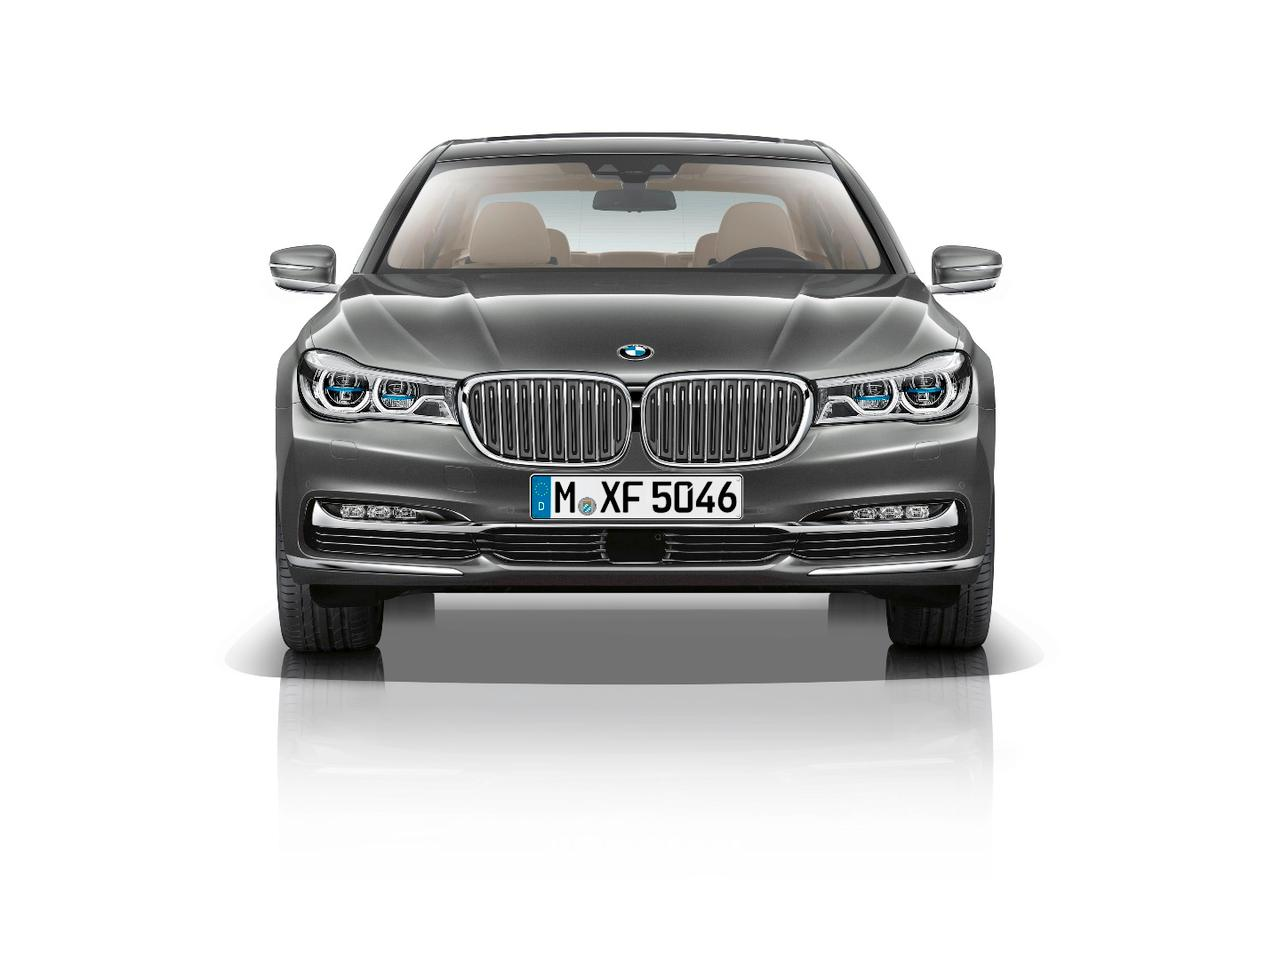 BMW's new 7 Series features a hybrid carbon-core construction